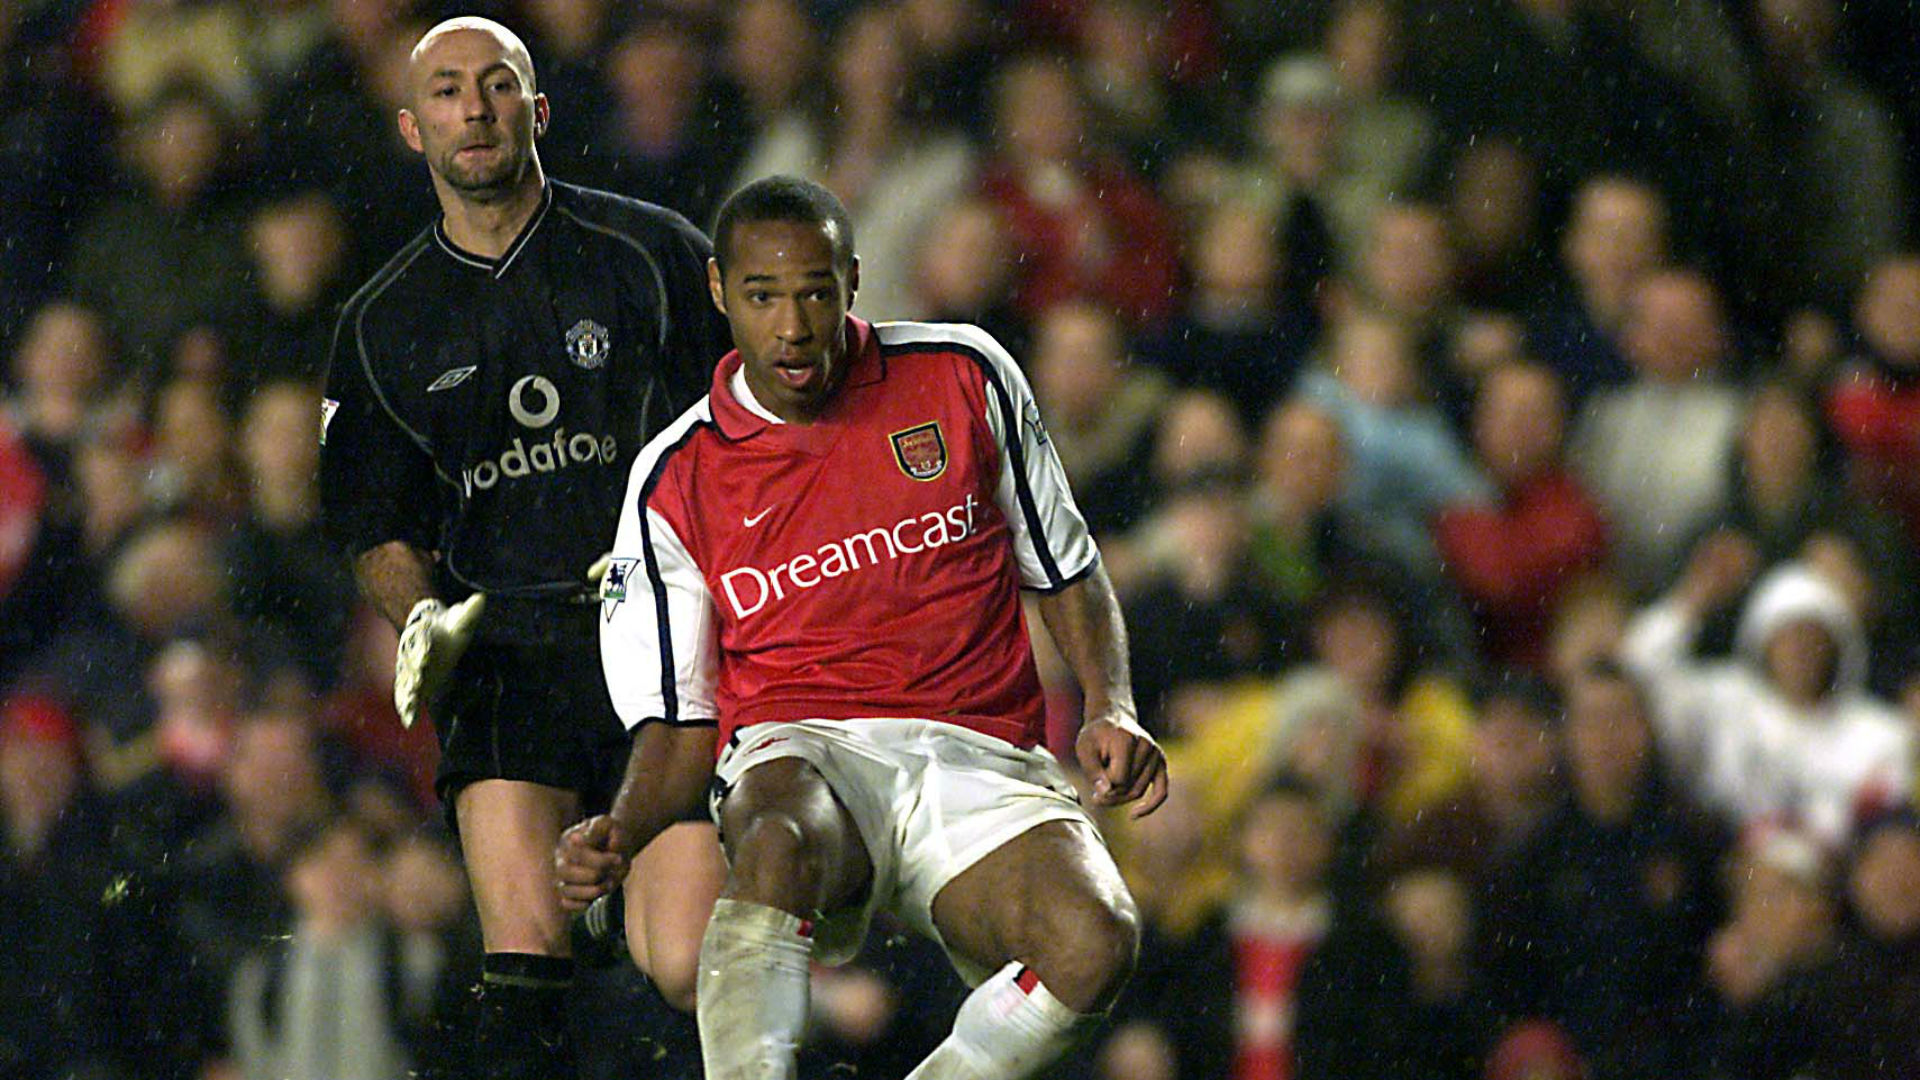 Thierry Henry Arsenal Manchester United